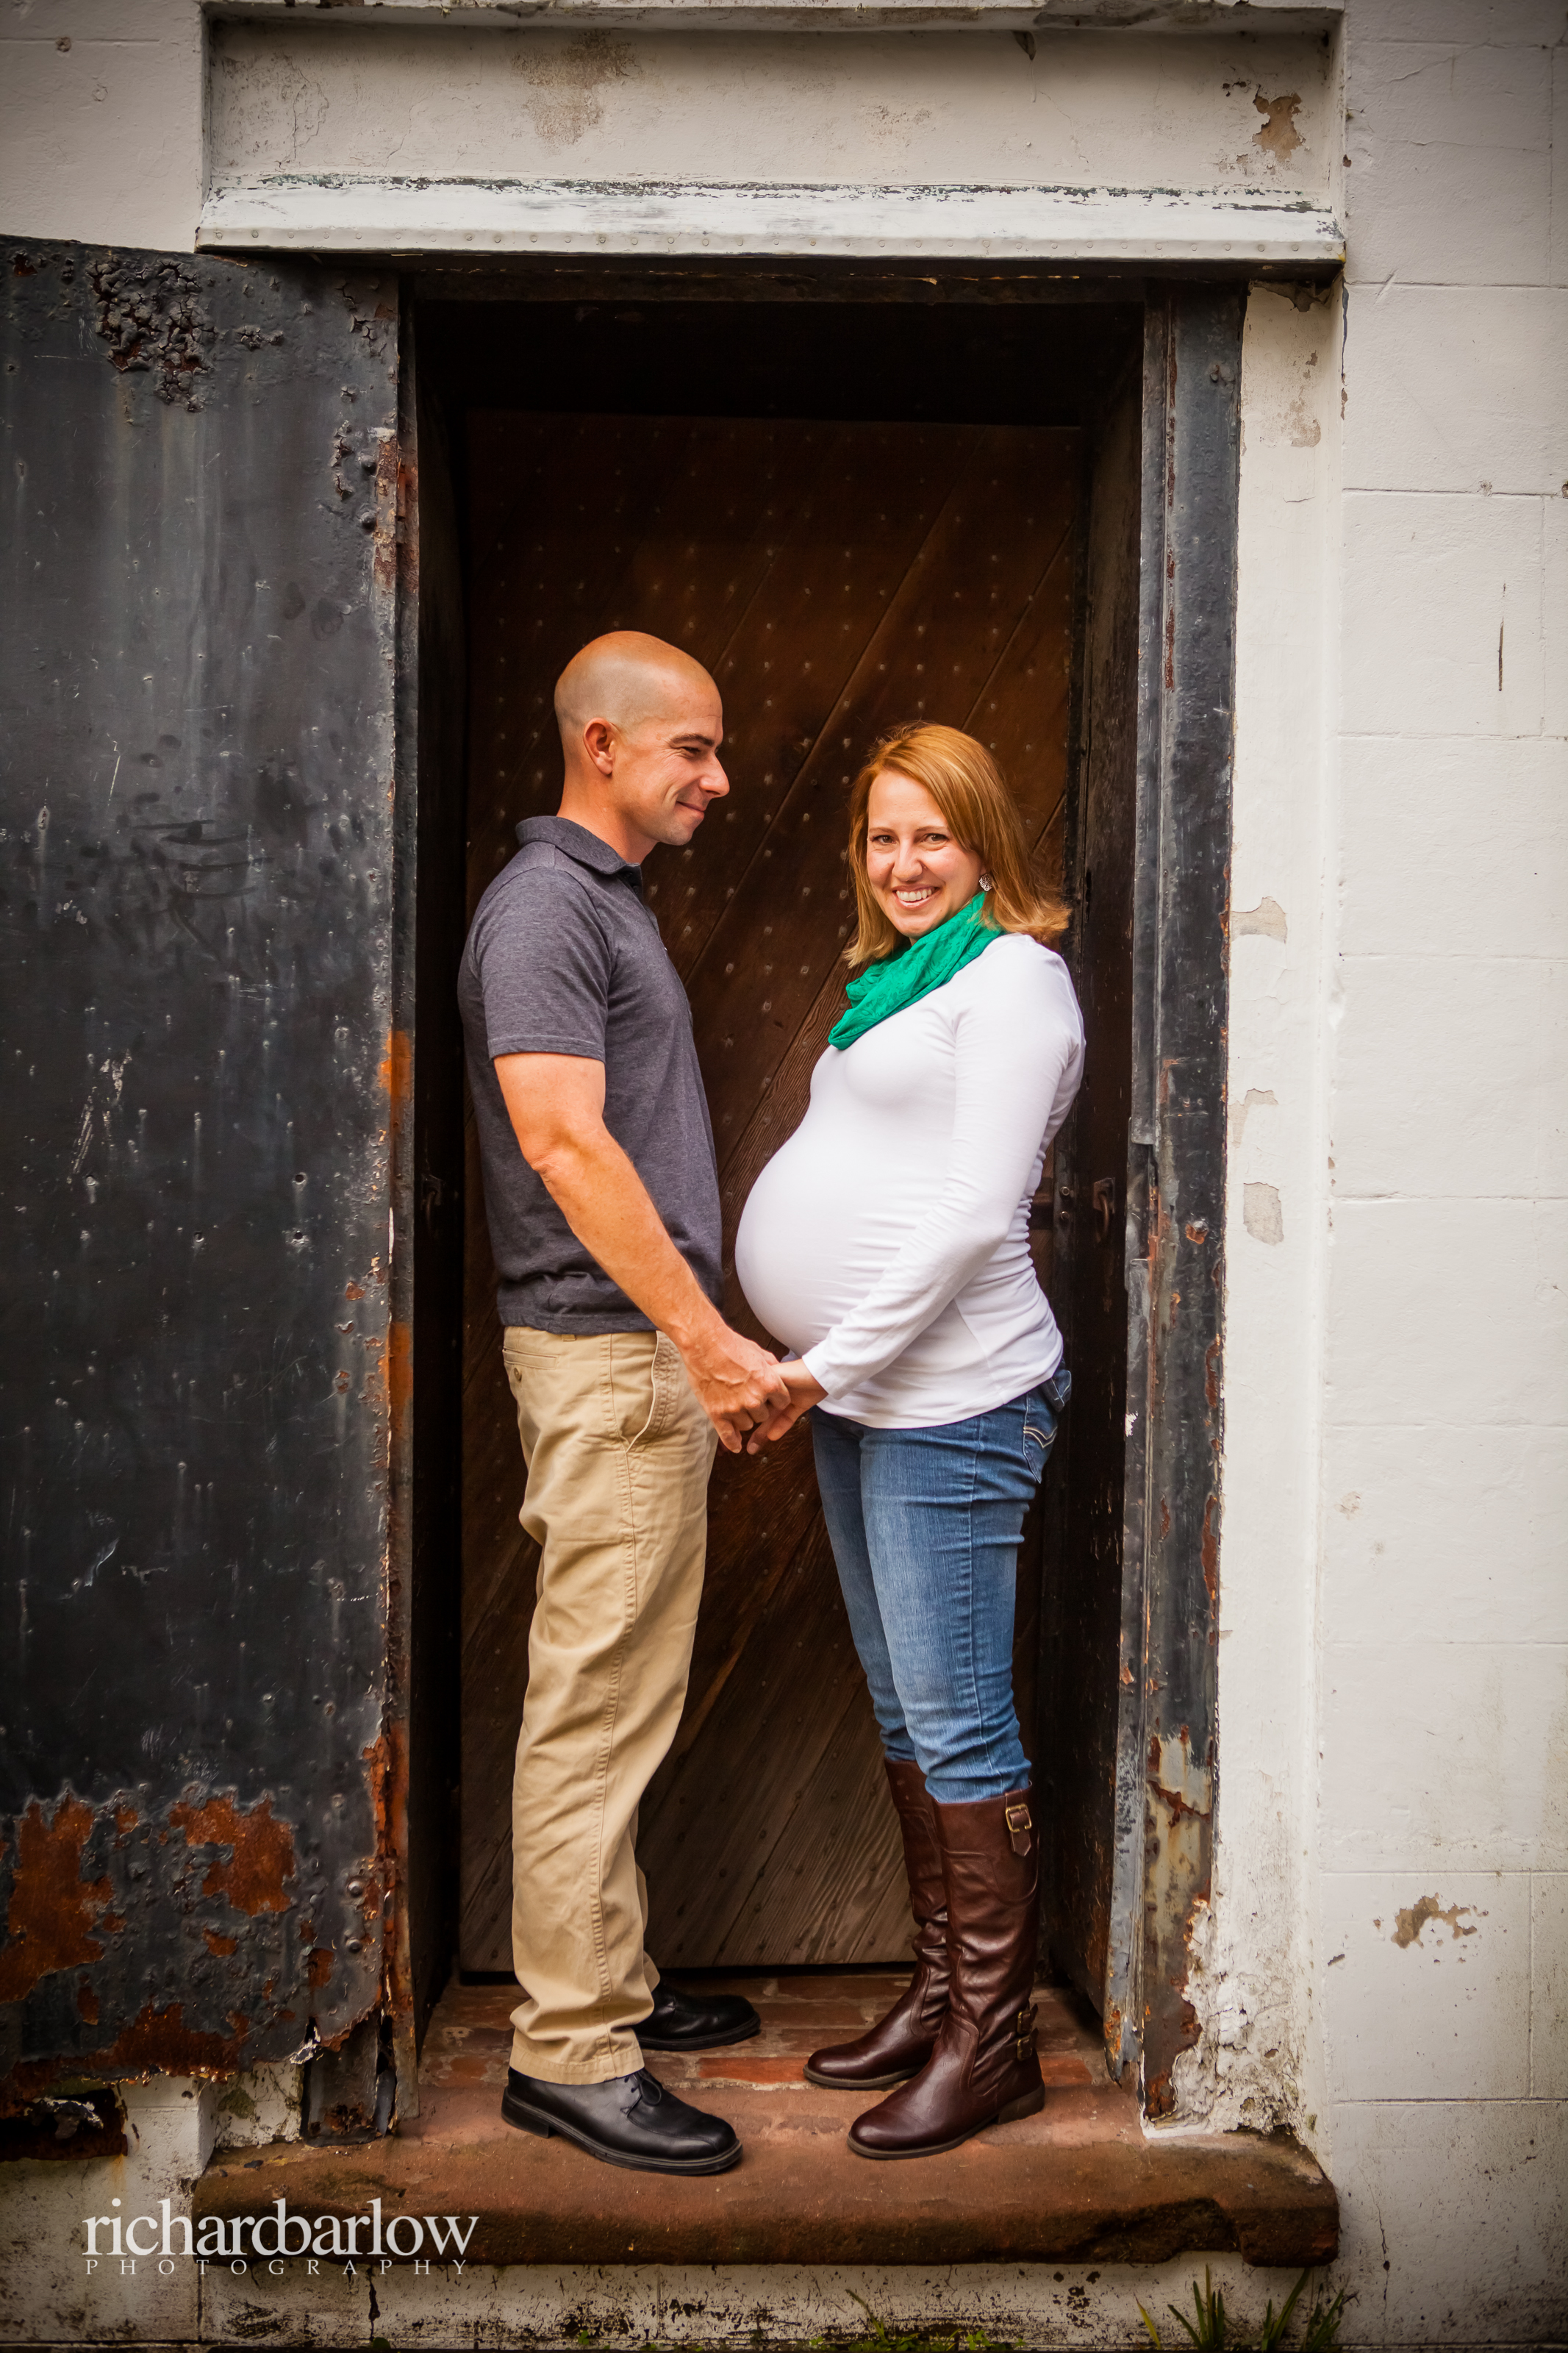 richard barlow photography - Sarah Maternity Session - Beaufort waterfront-5.jpg